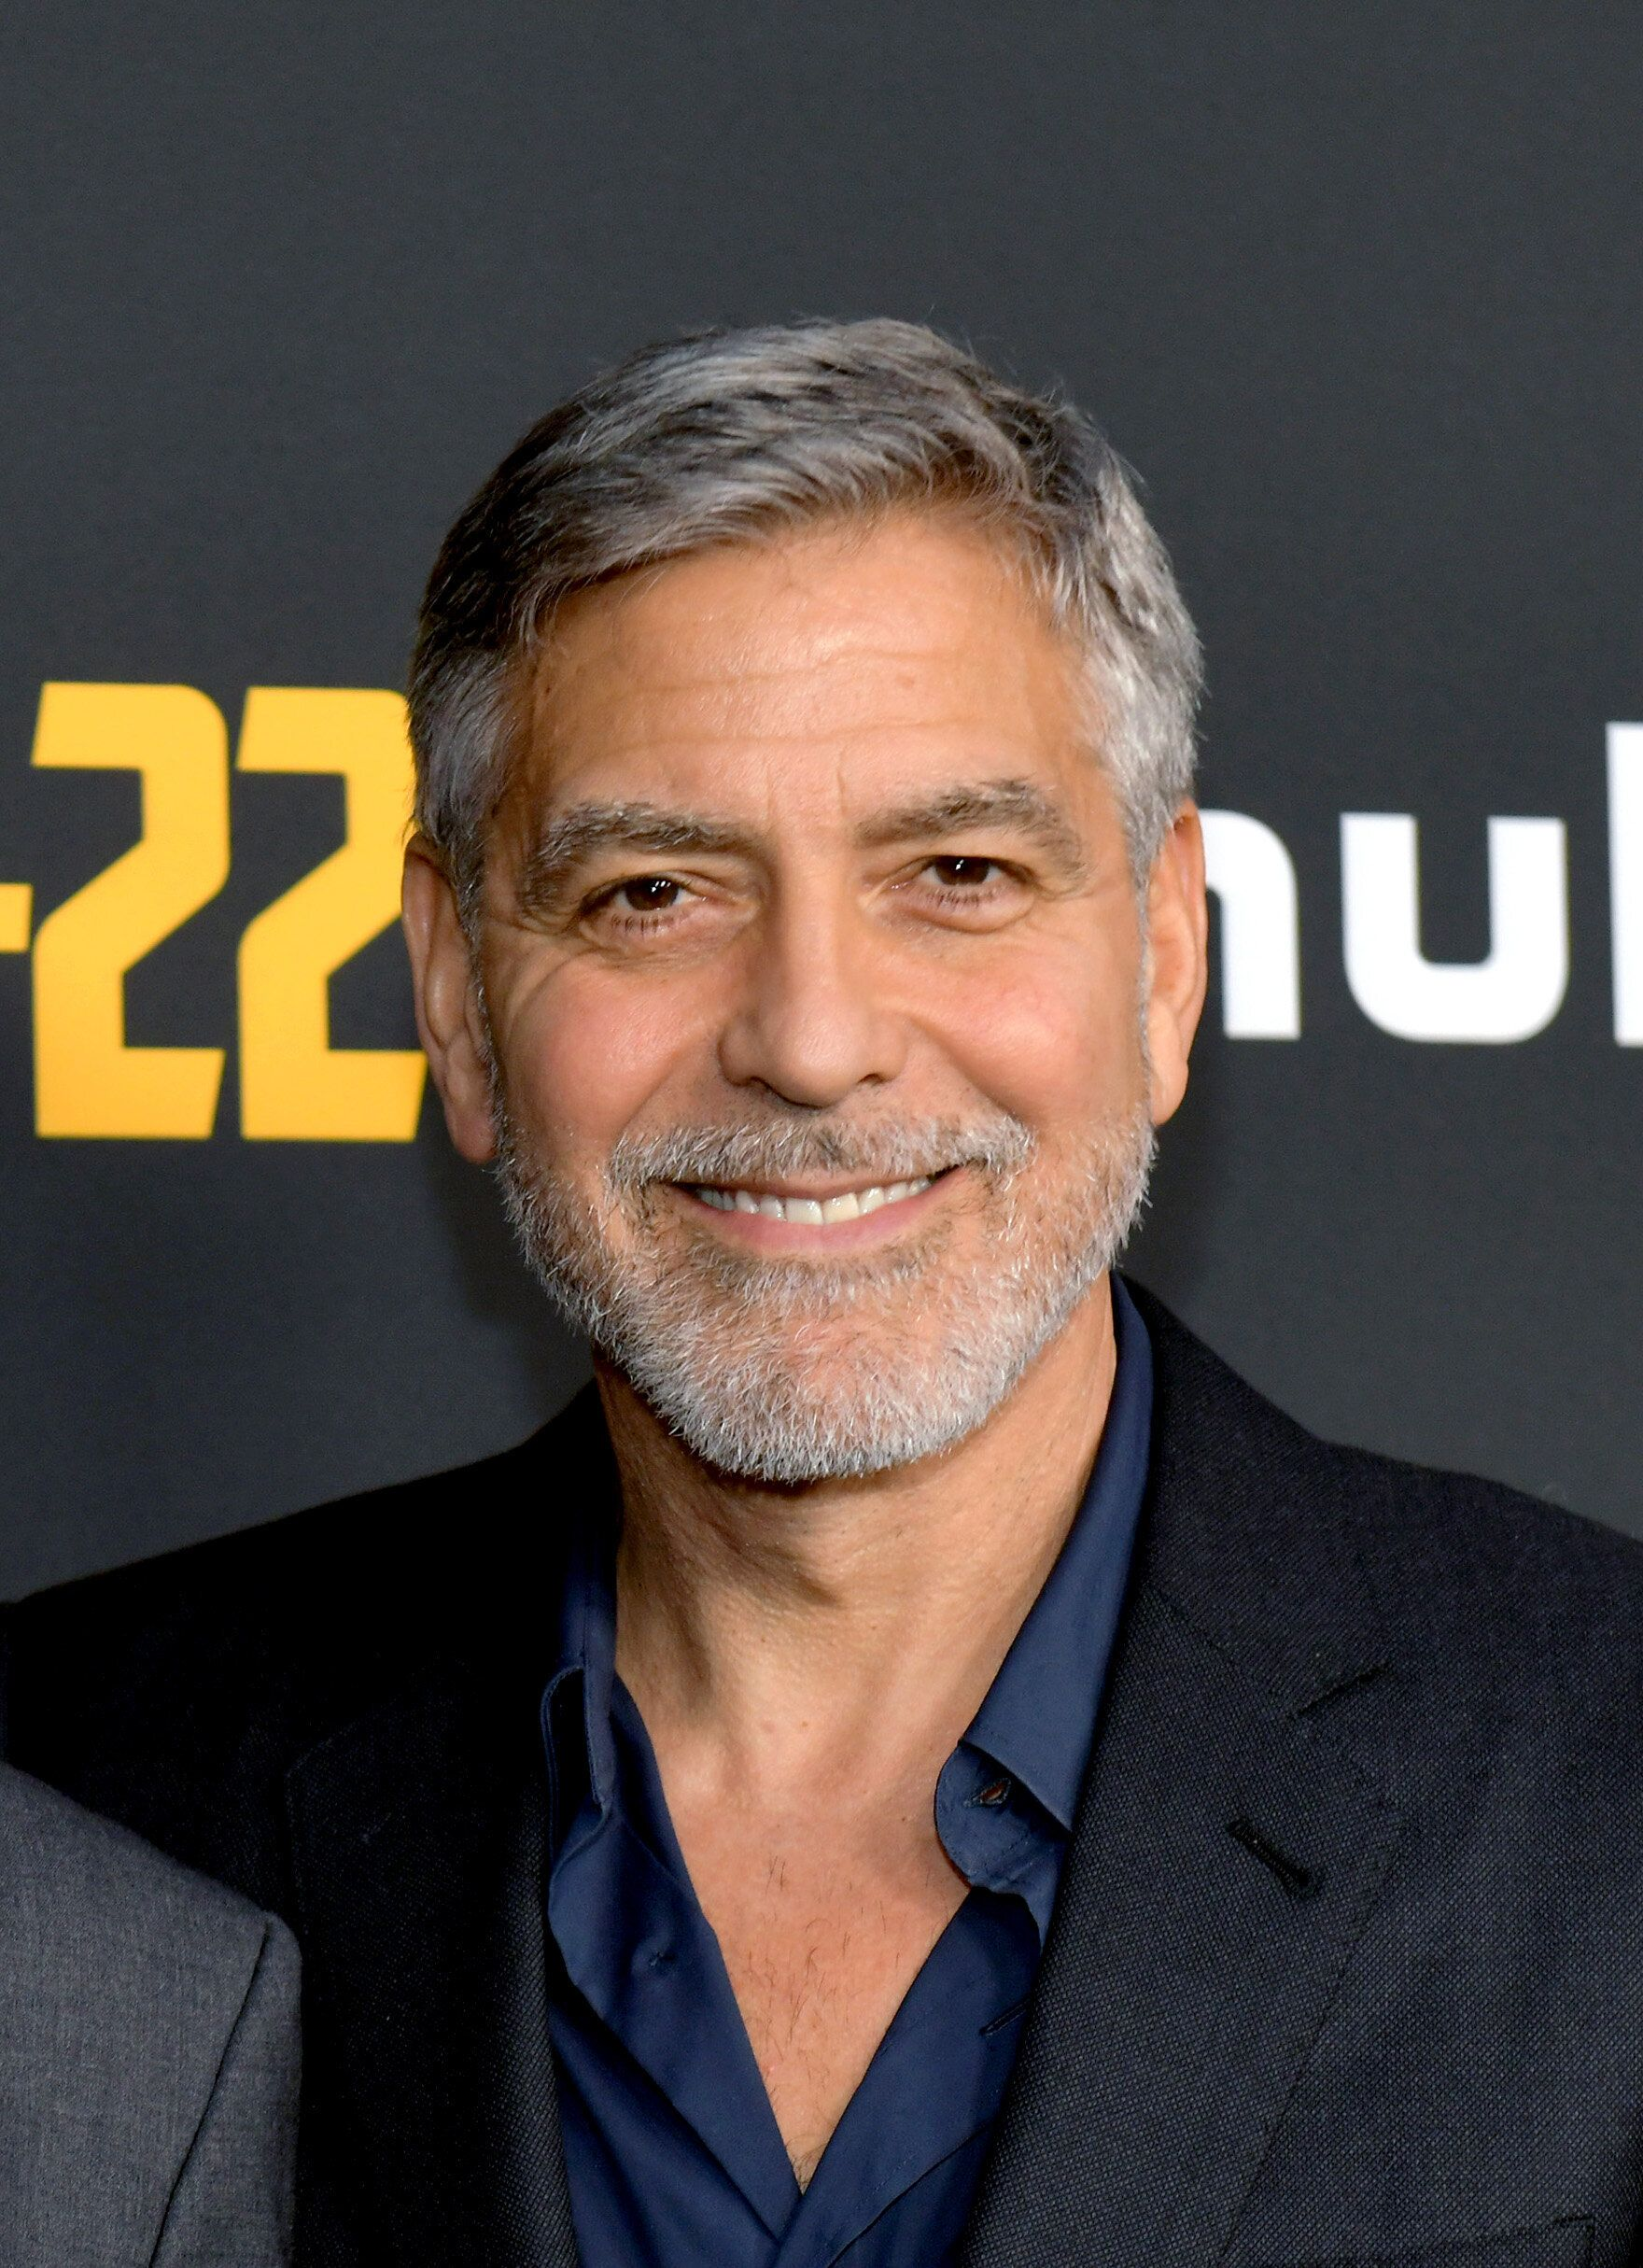 """NORTH HOLLYWOOD, CALIFORNIA - MAY 08: George Clooney attends the FYC Red Carpet for Hulu's """"Catch-22"""" at Saban Media Center on May 08, 2019 in North Hollywood, California. (Photo by Rodin Eckenroth/Getty Images)"""